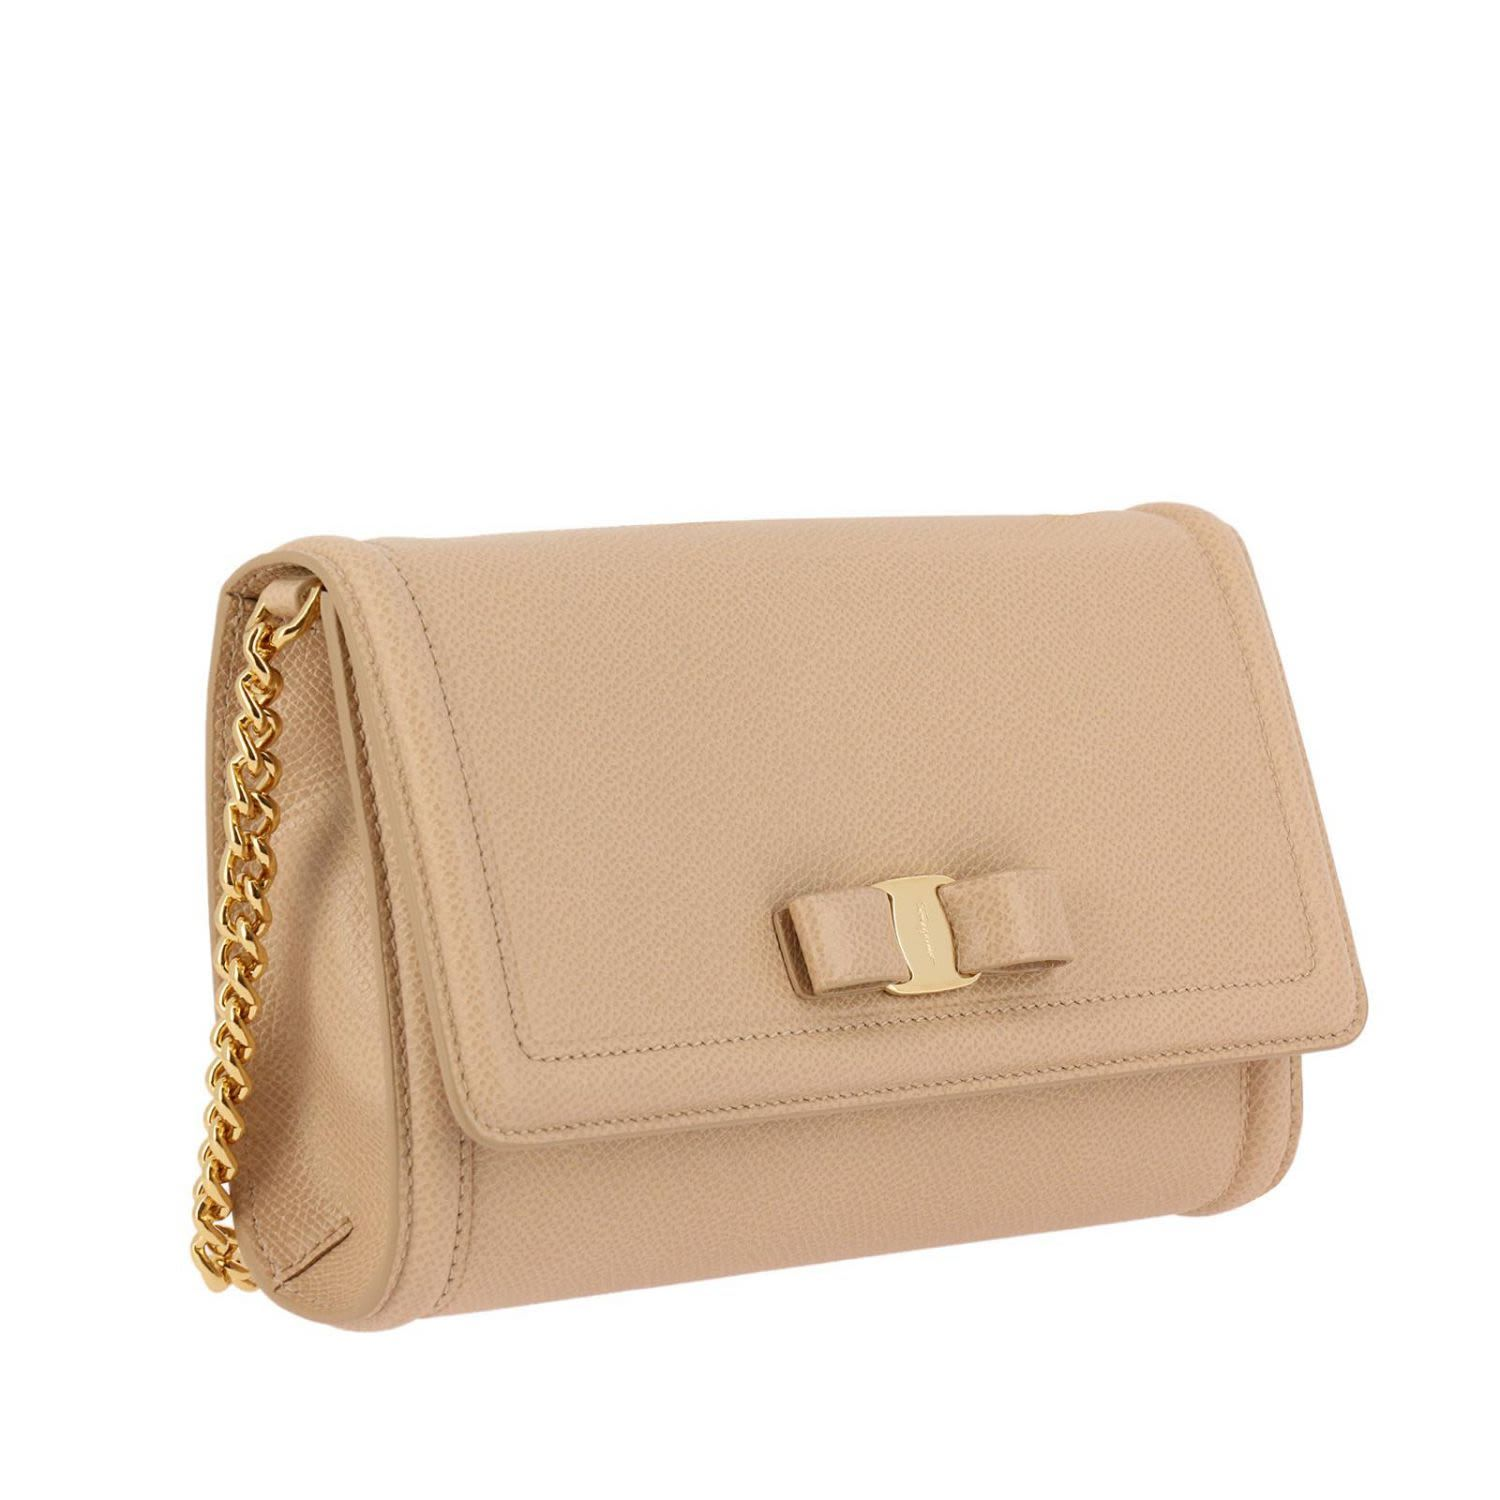 55848ab83f28 SALVATORE FERRAGAMO MINI BAG MINI BAG WOMEN SALVATORE FERRAGAMO.   salvatoreferragamo  bags  leather